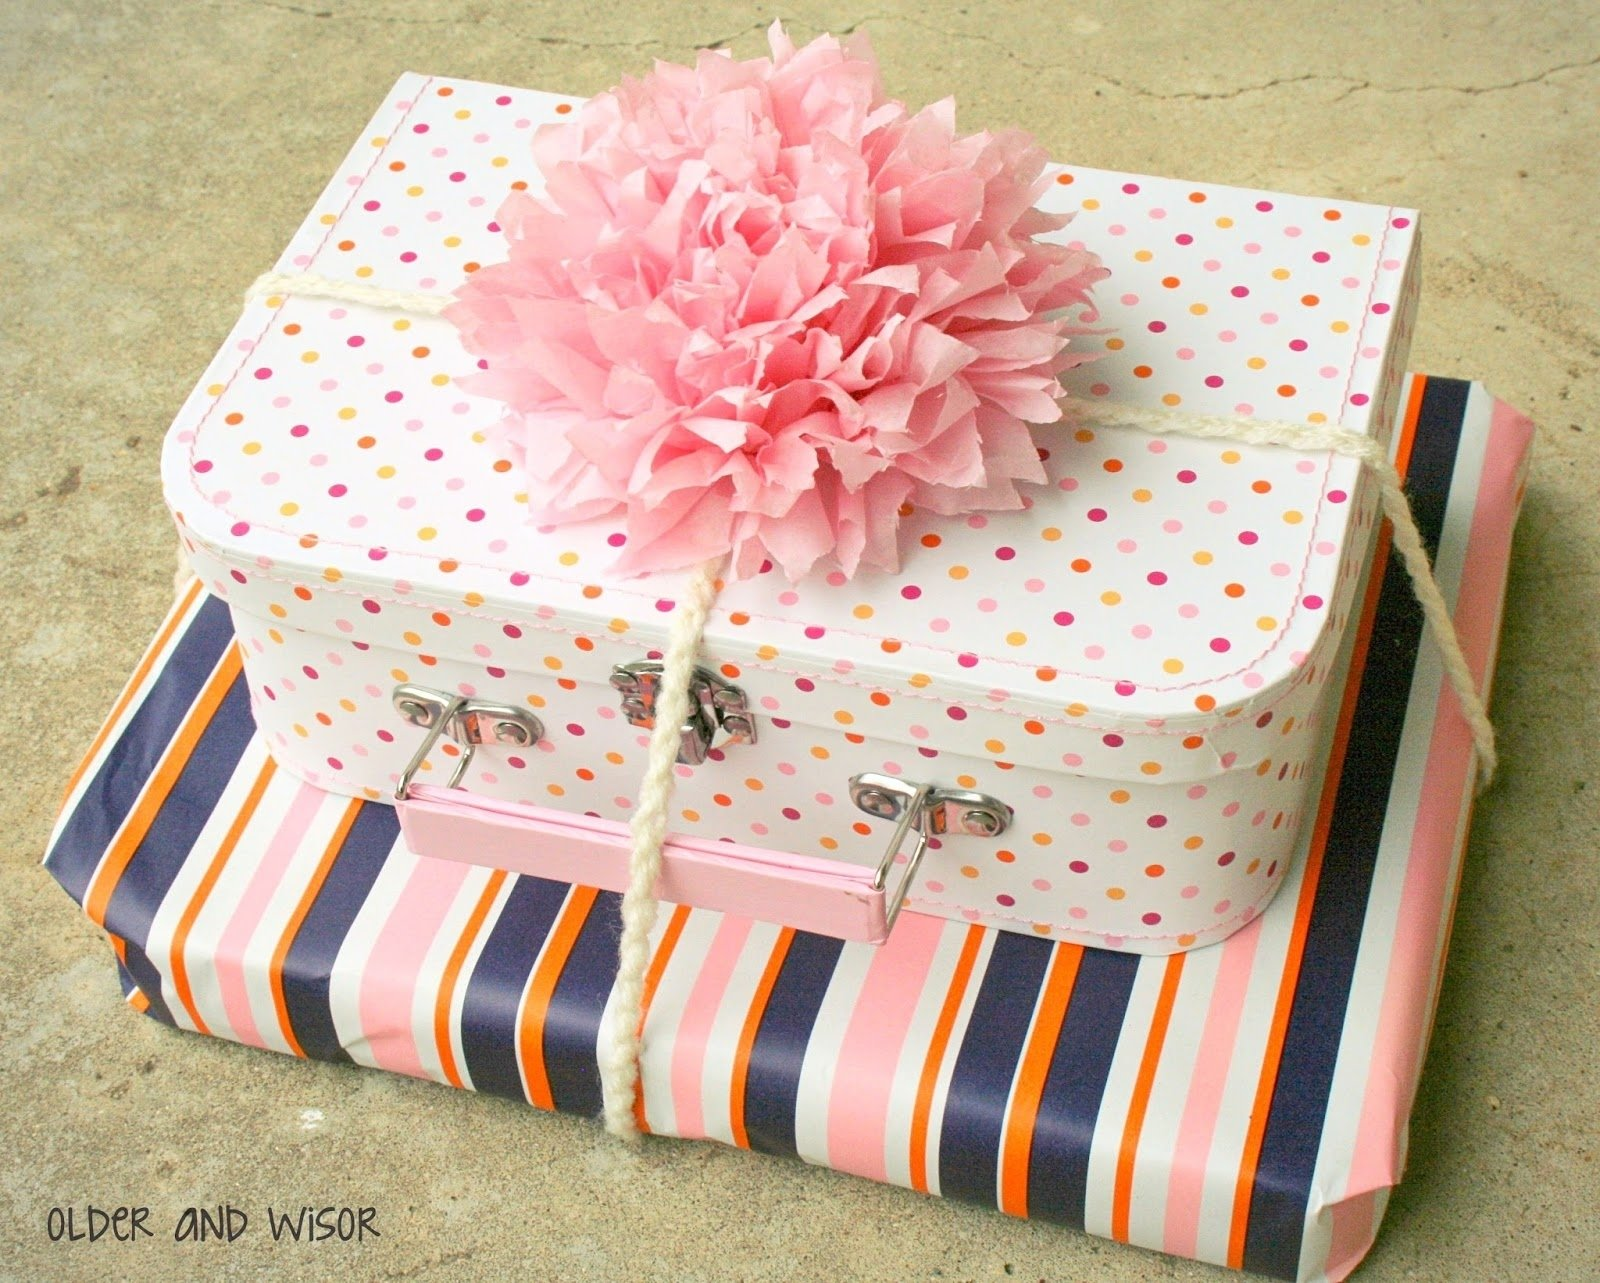 10 Great Birthday Gift Ideas For 7 Year Old Girl older and wisor easy birthday gifts what to get for a 7 year old 2 2020